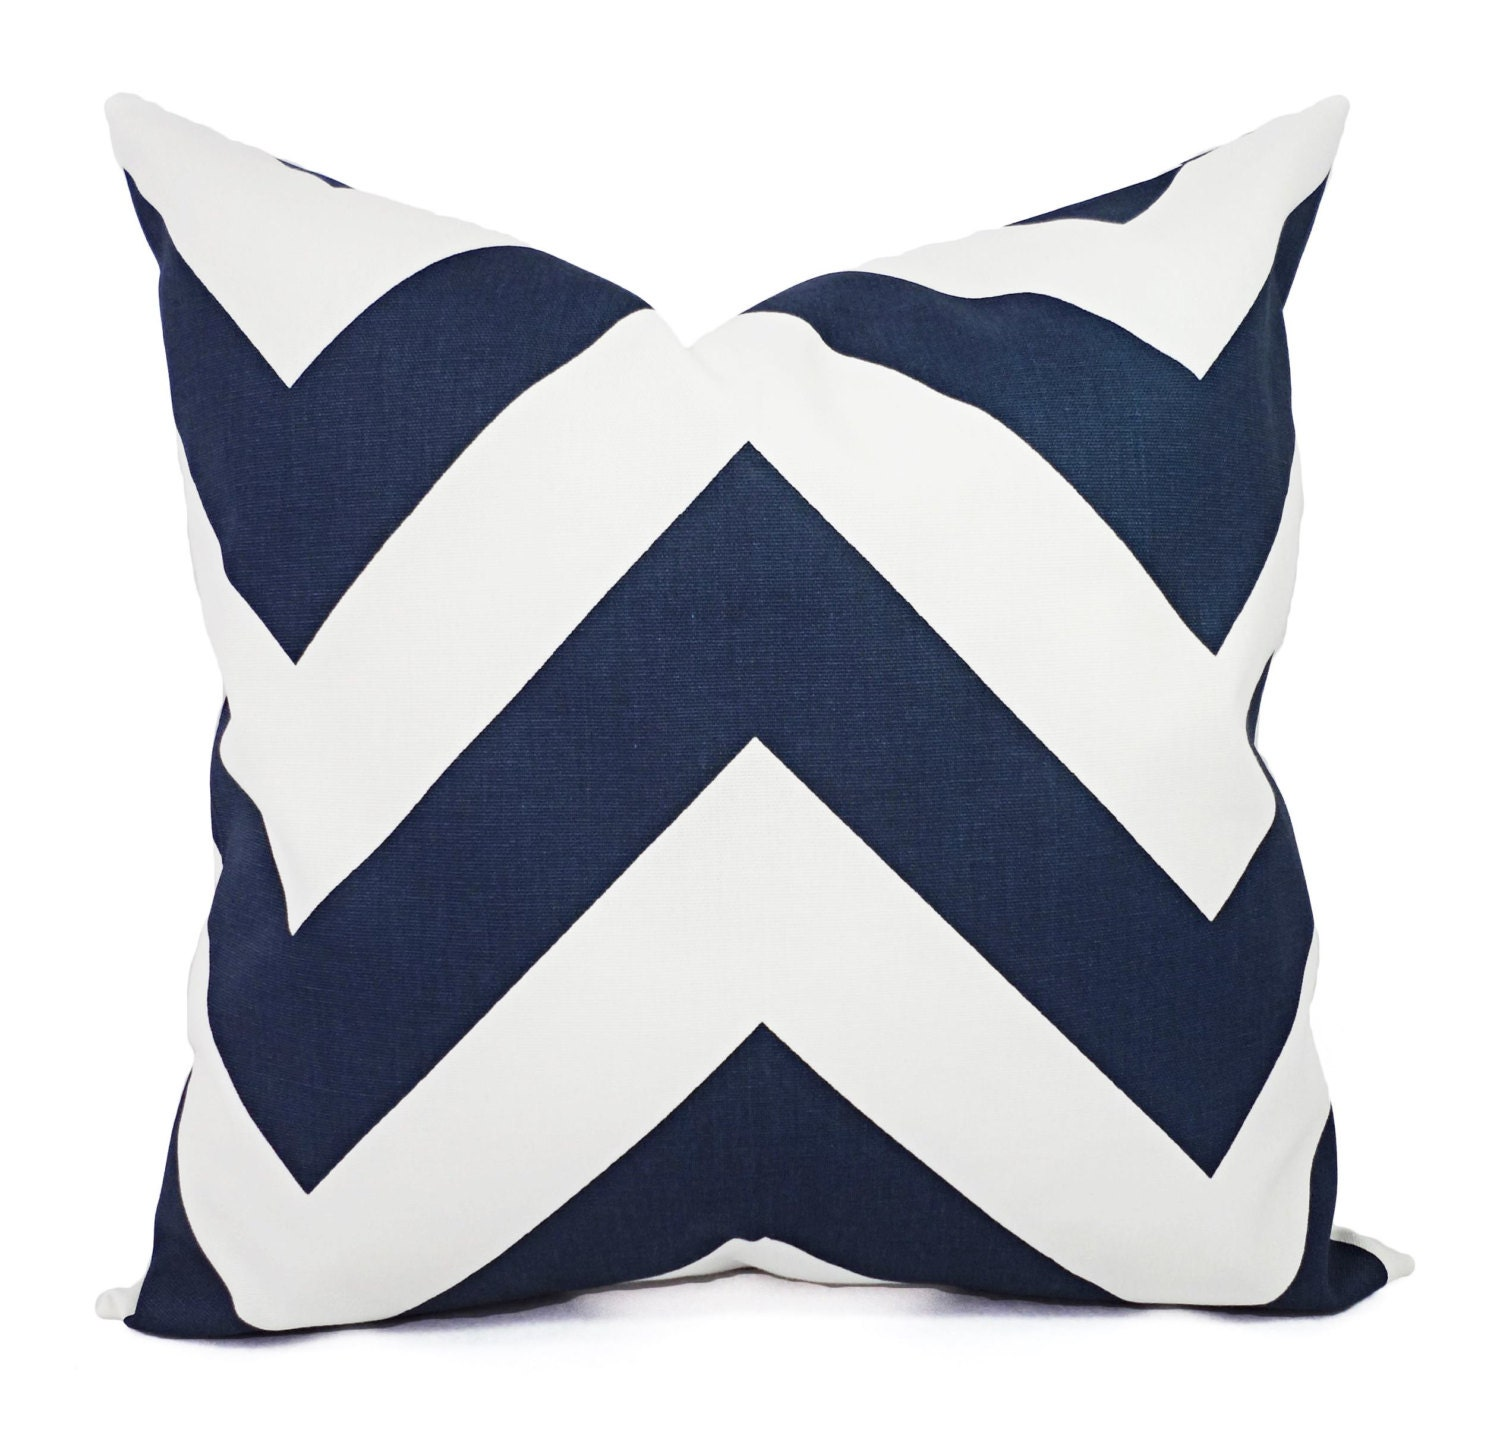 Navy Blue Decorative Pillow Covers : Blue Decorative Pillow Covers Two Navy by CastawayCoveDecor